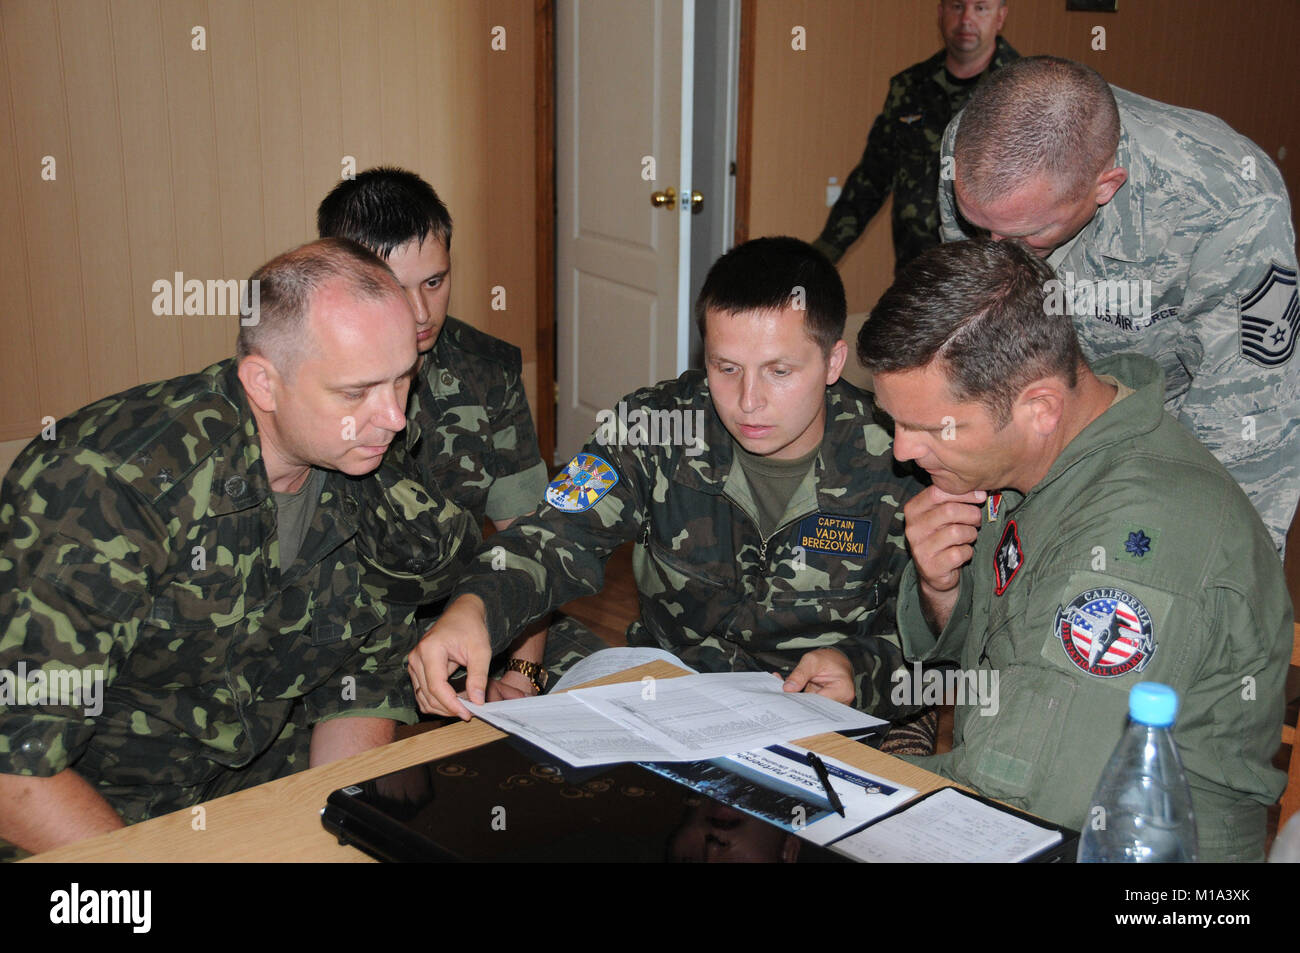 110716-Z-VM449-005 Lt. Col. Robert Swertfager, 144th Fighter Wing California Air National Guard, discusses the itinerary - Stock Image